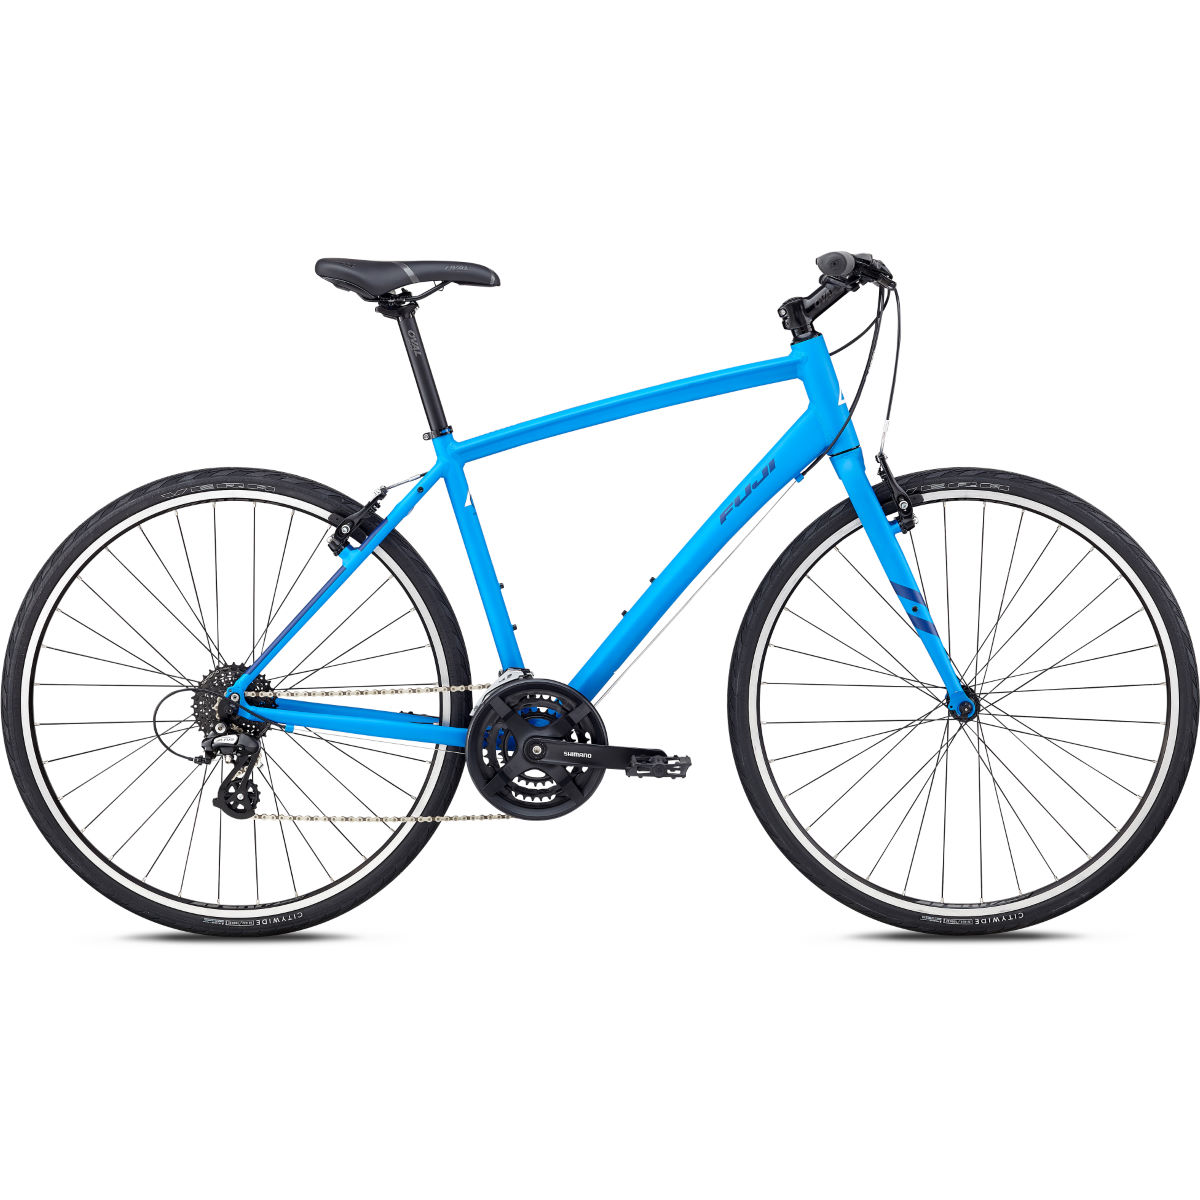 Fuji Absolute 2.1 City Bike - Bicicletas de ciudad e híbridas